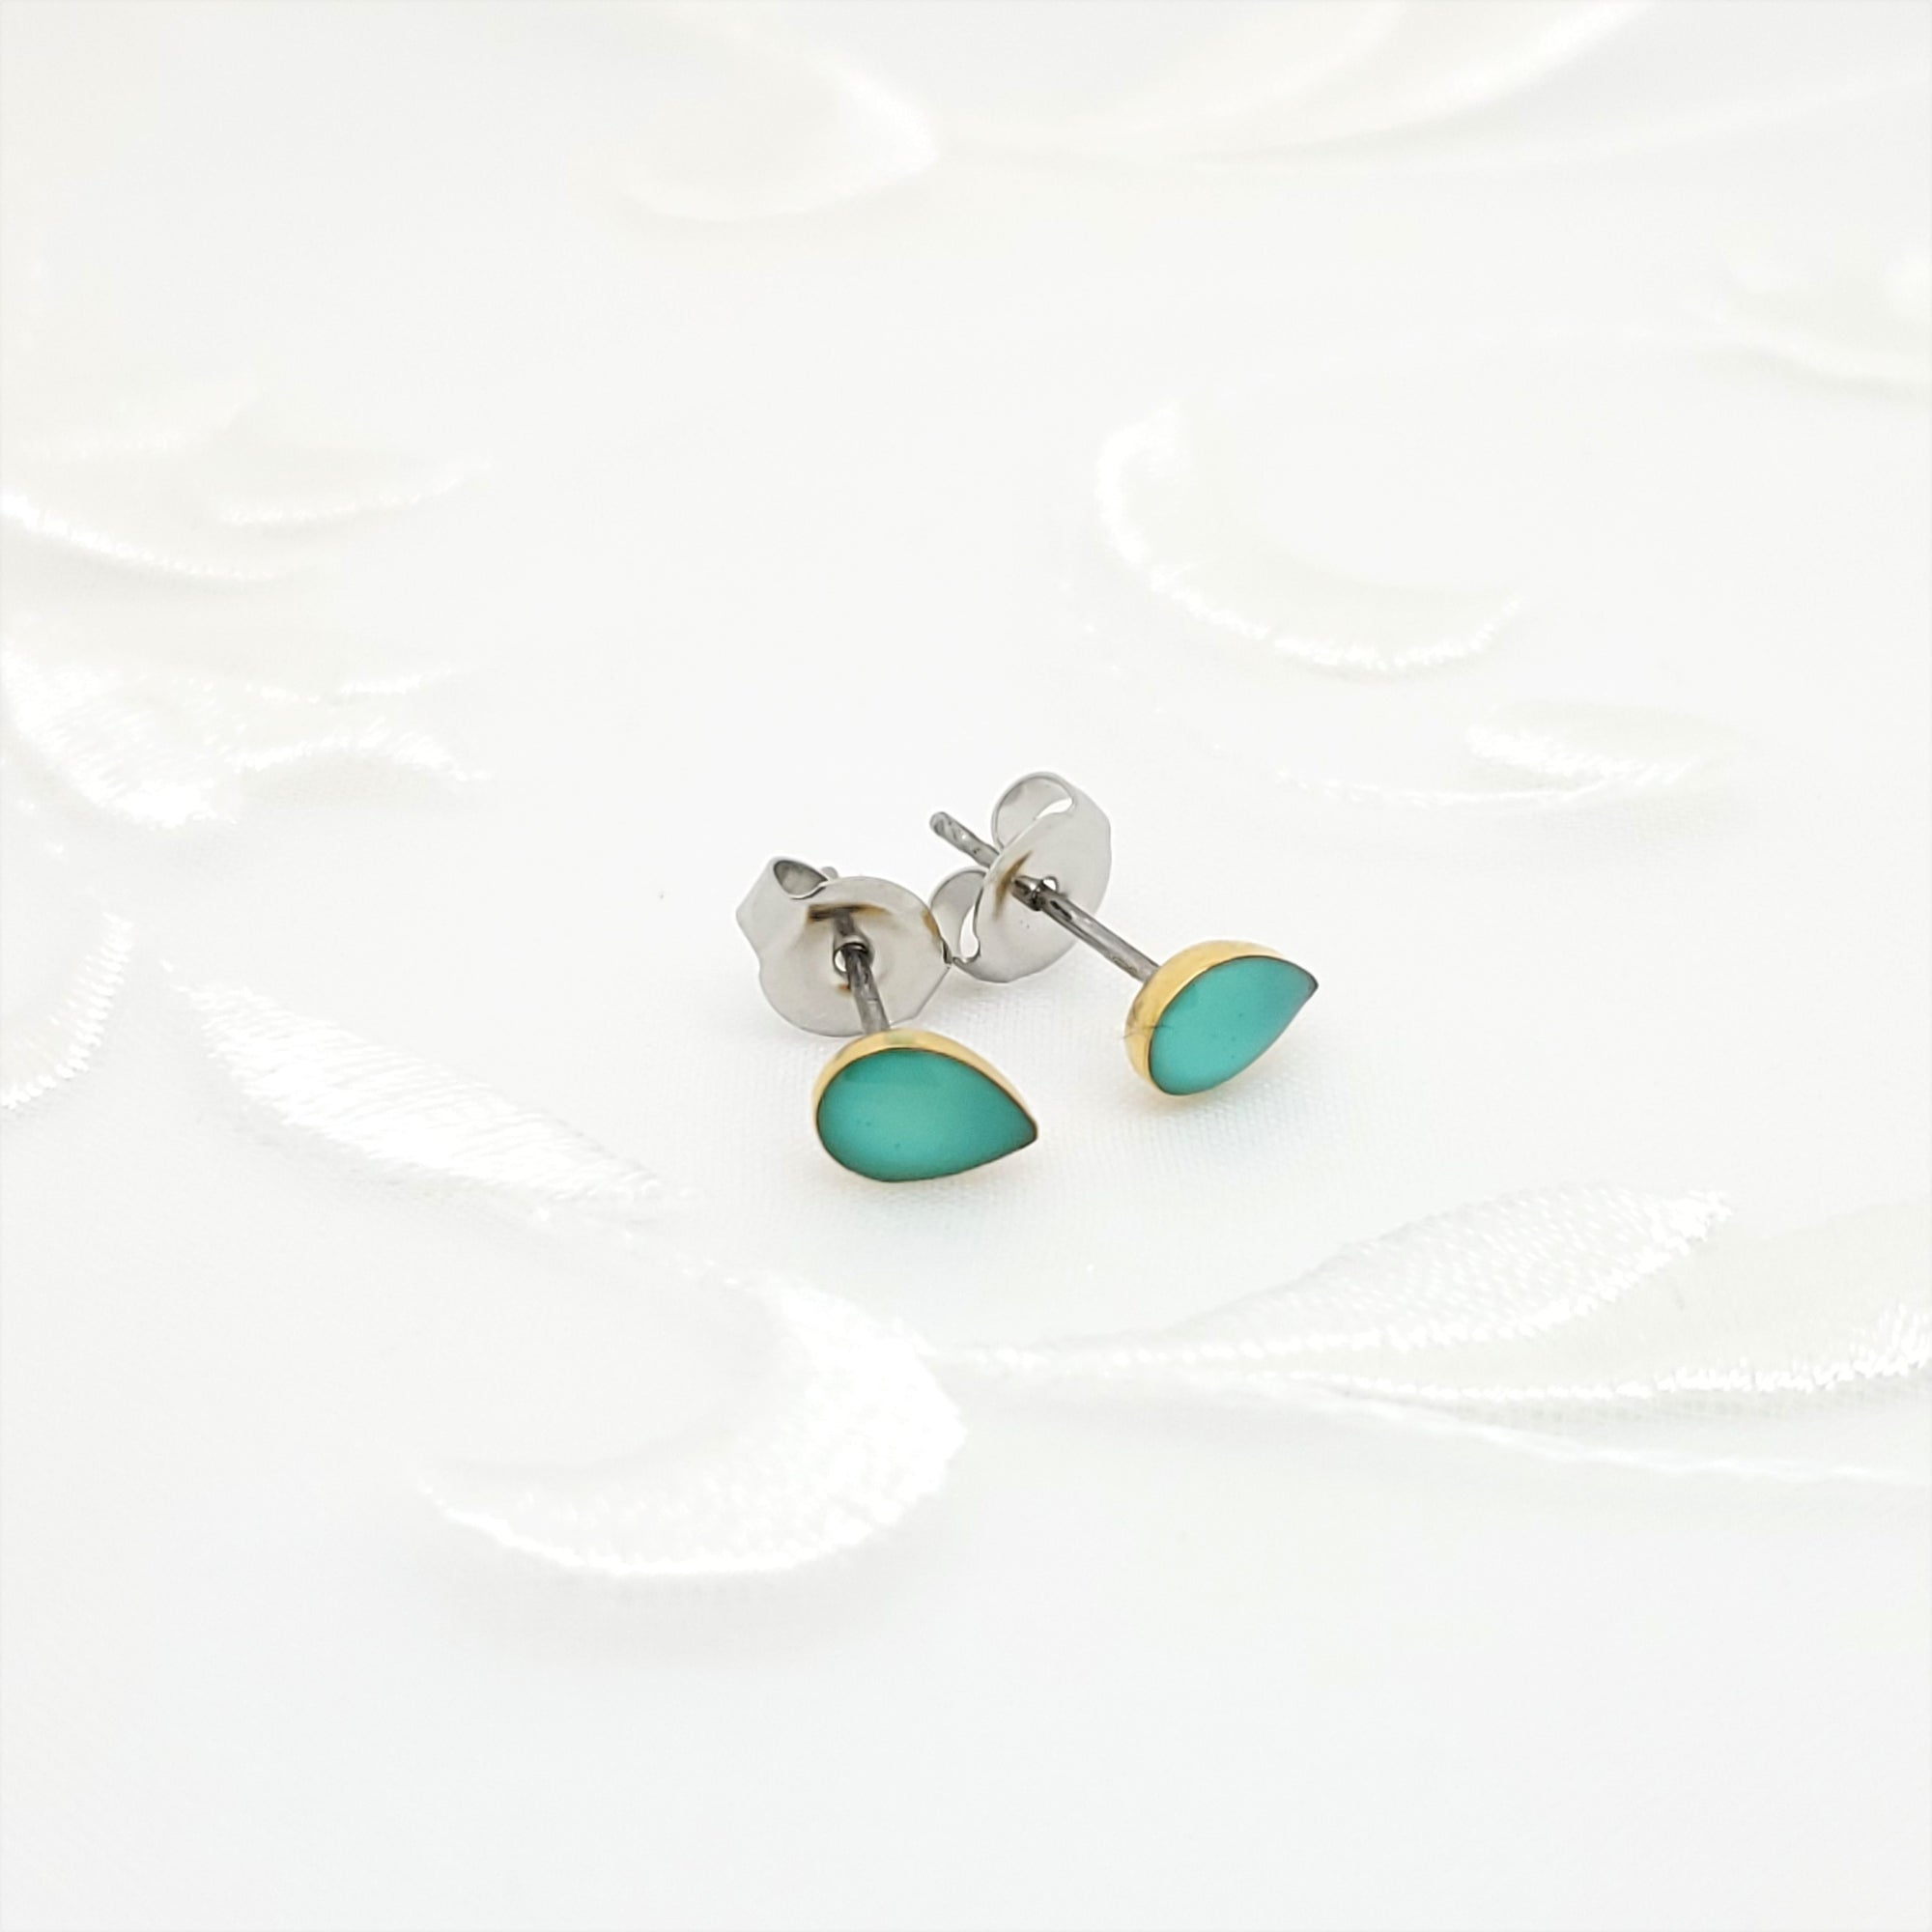 Antique Gold Drop Stud Earrings with Light Turquoise Resin